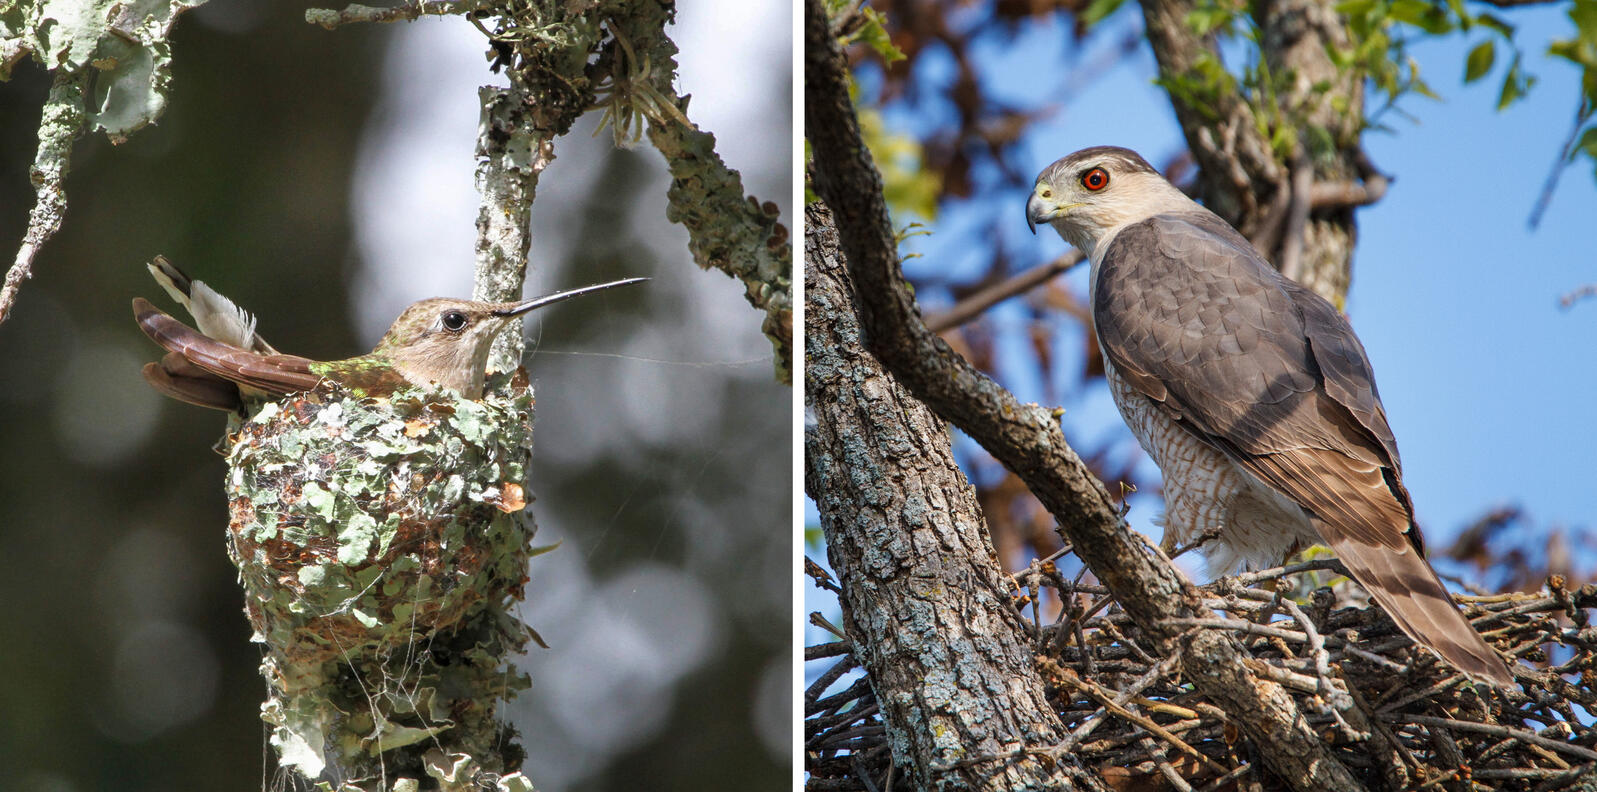 From left, a Black-chinned Hummingbird (photo: Mark Wilson) and a Cooper's Hawk (photo: Marlo Casabar).